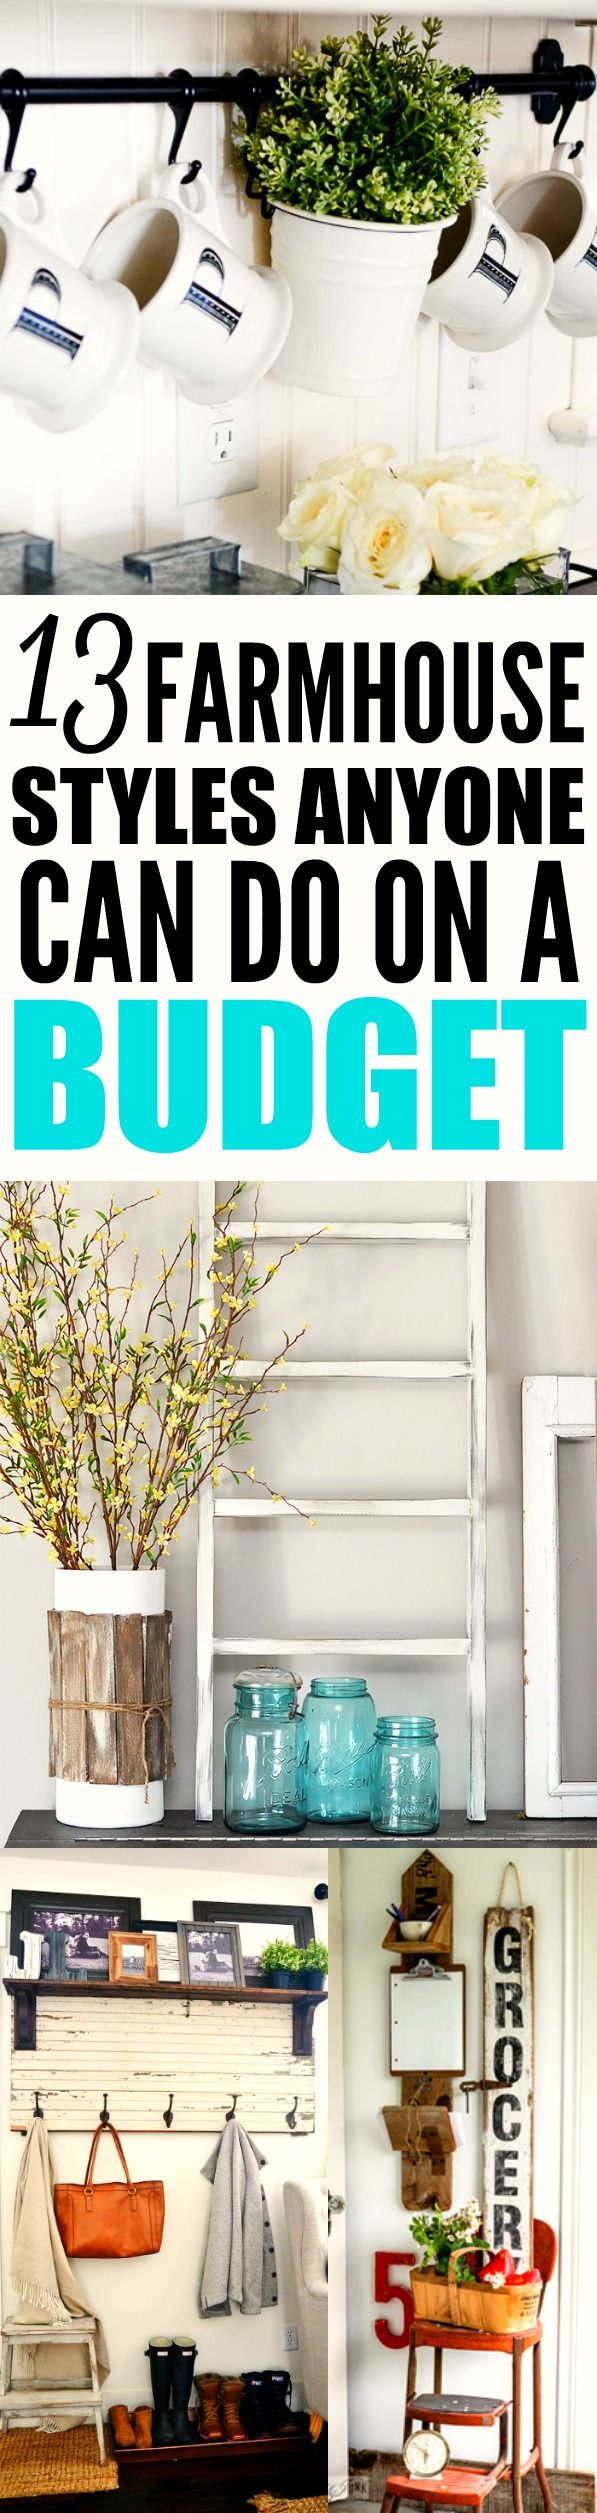 Best 700+ Budget Decorating Ideas images on Pinterest | Advent ...